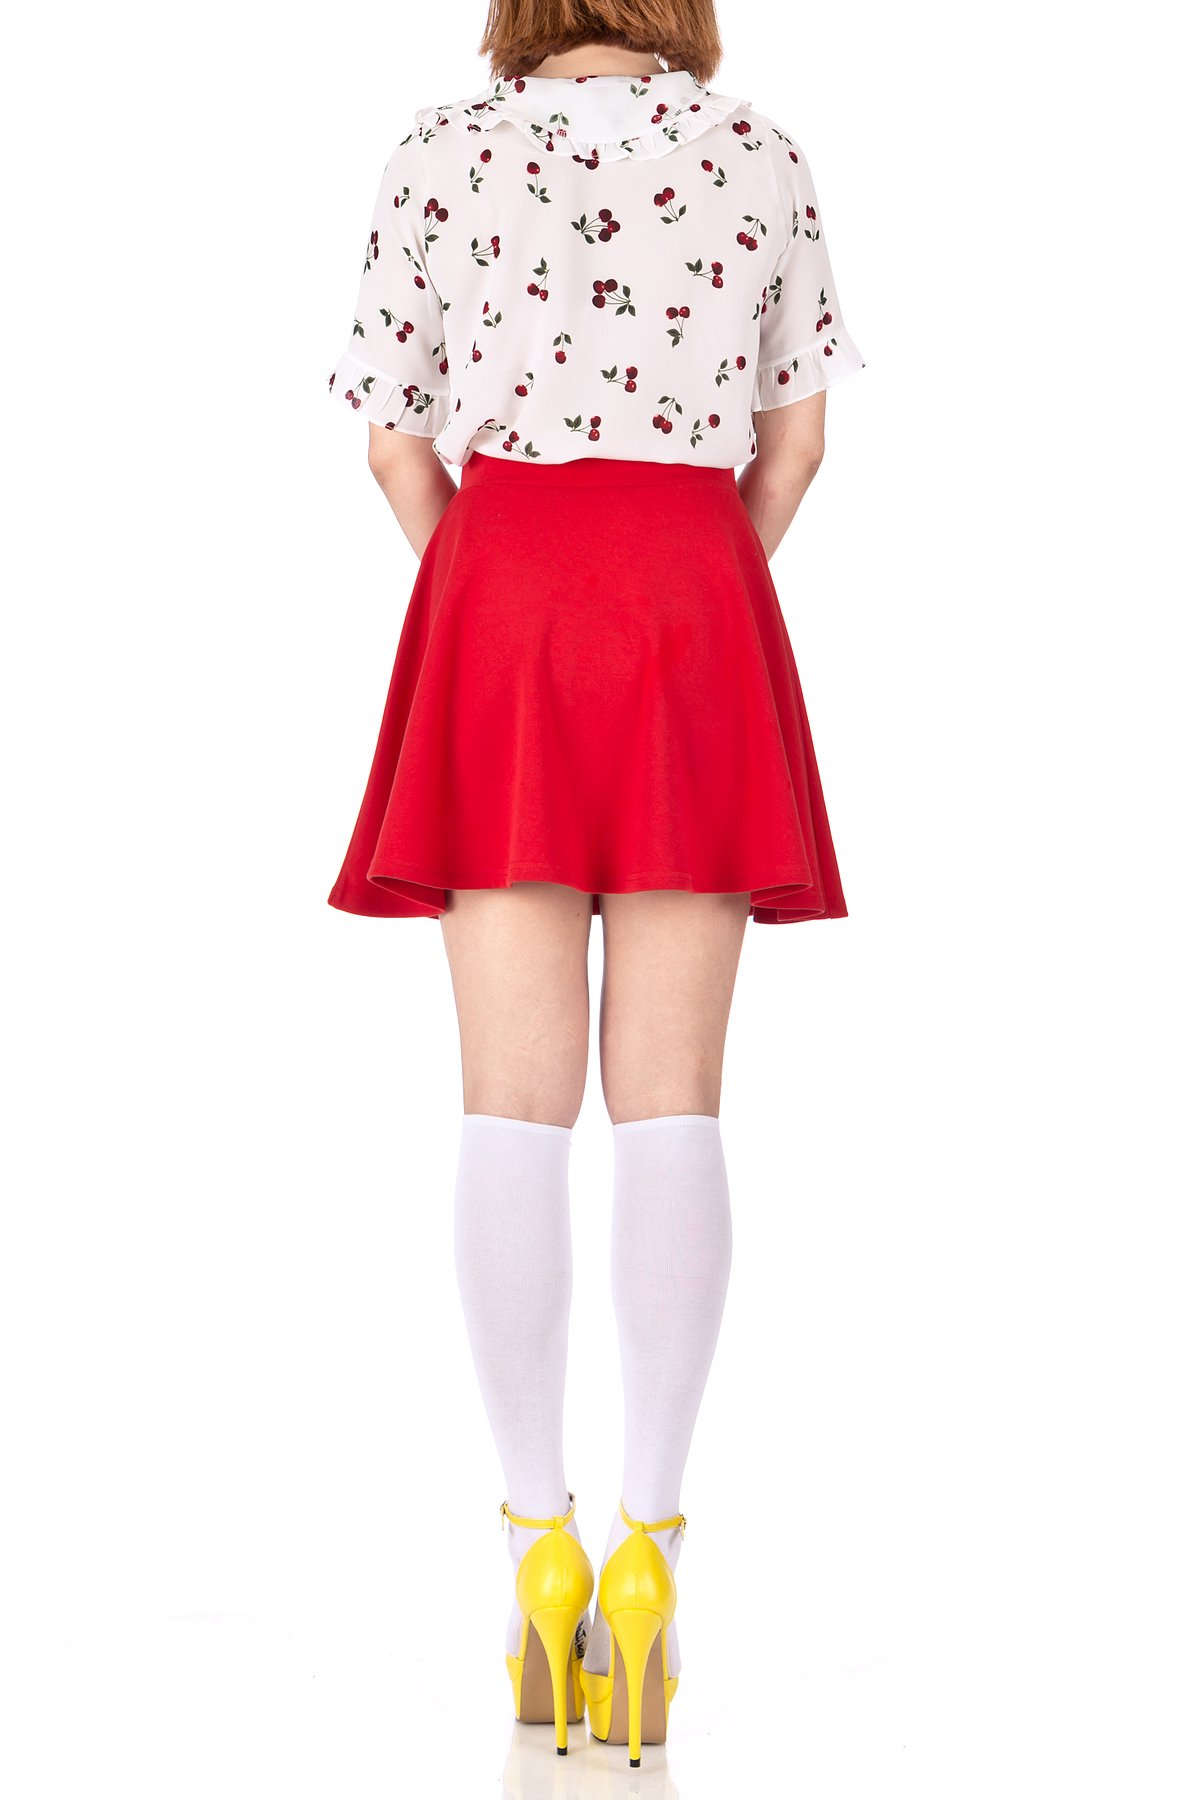 Basic Solid Stretchy Cotton High Waist line Flared Skater Mini Skirt Red 05